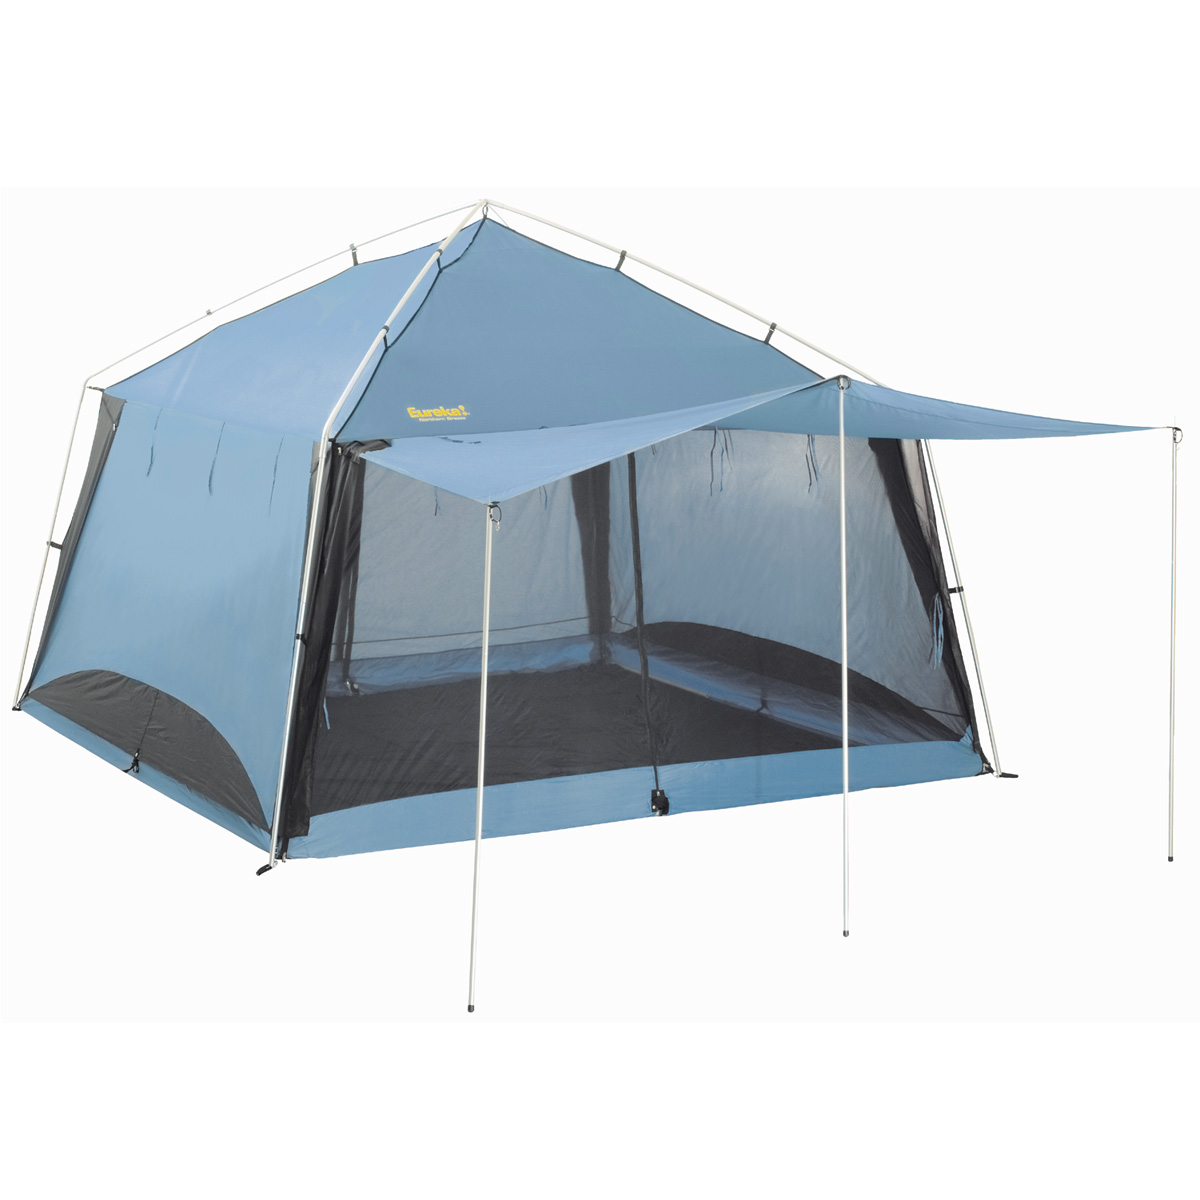 Northern Breeze Screen House  sc 1 st  Tents - Johnson Outdoors & Northern Breeze Screen House | Eureka!